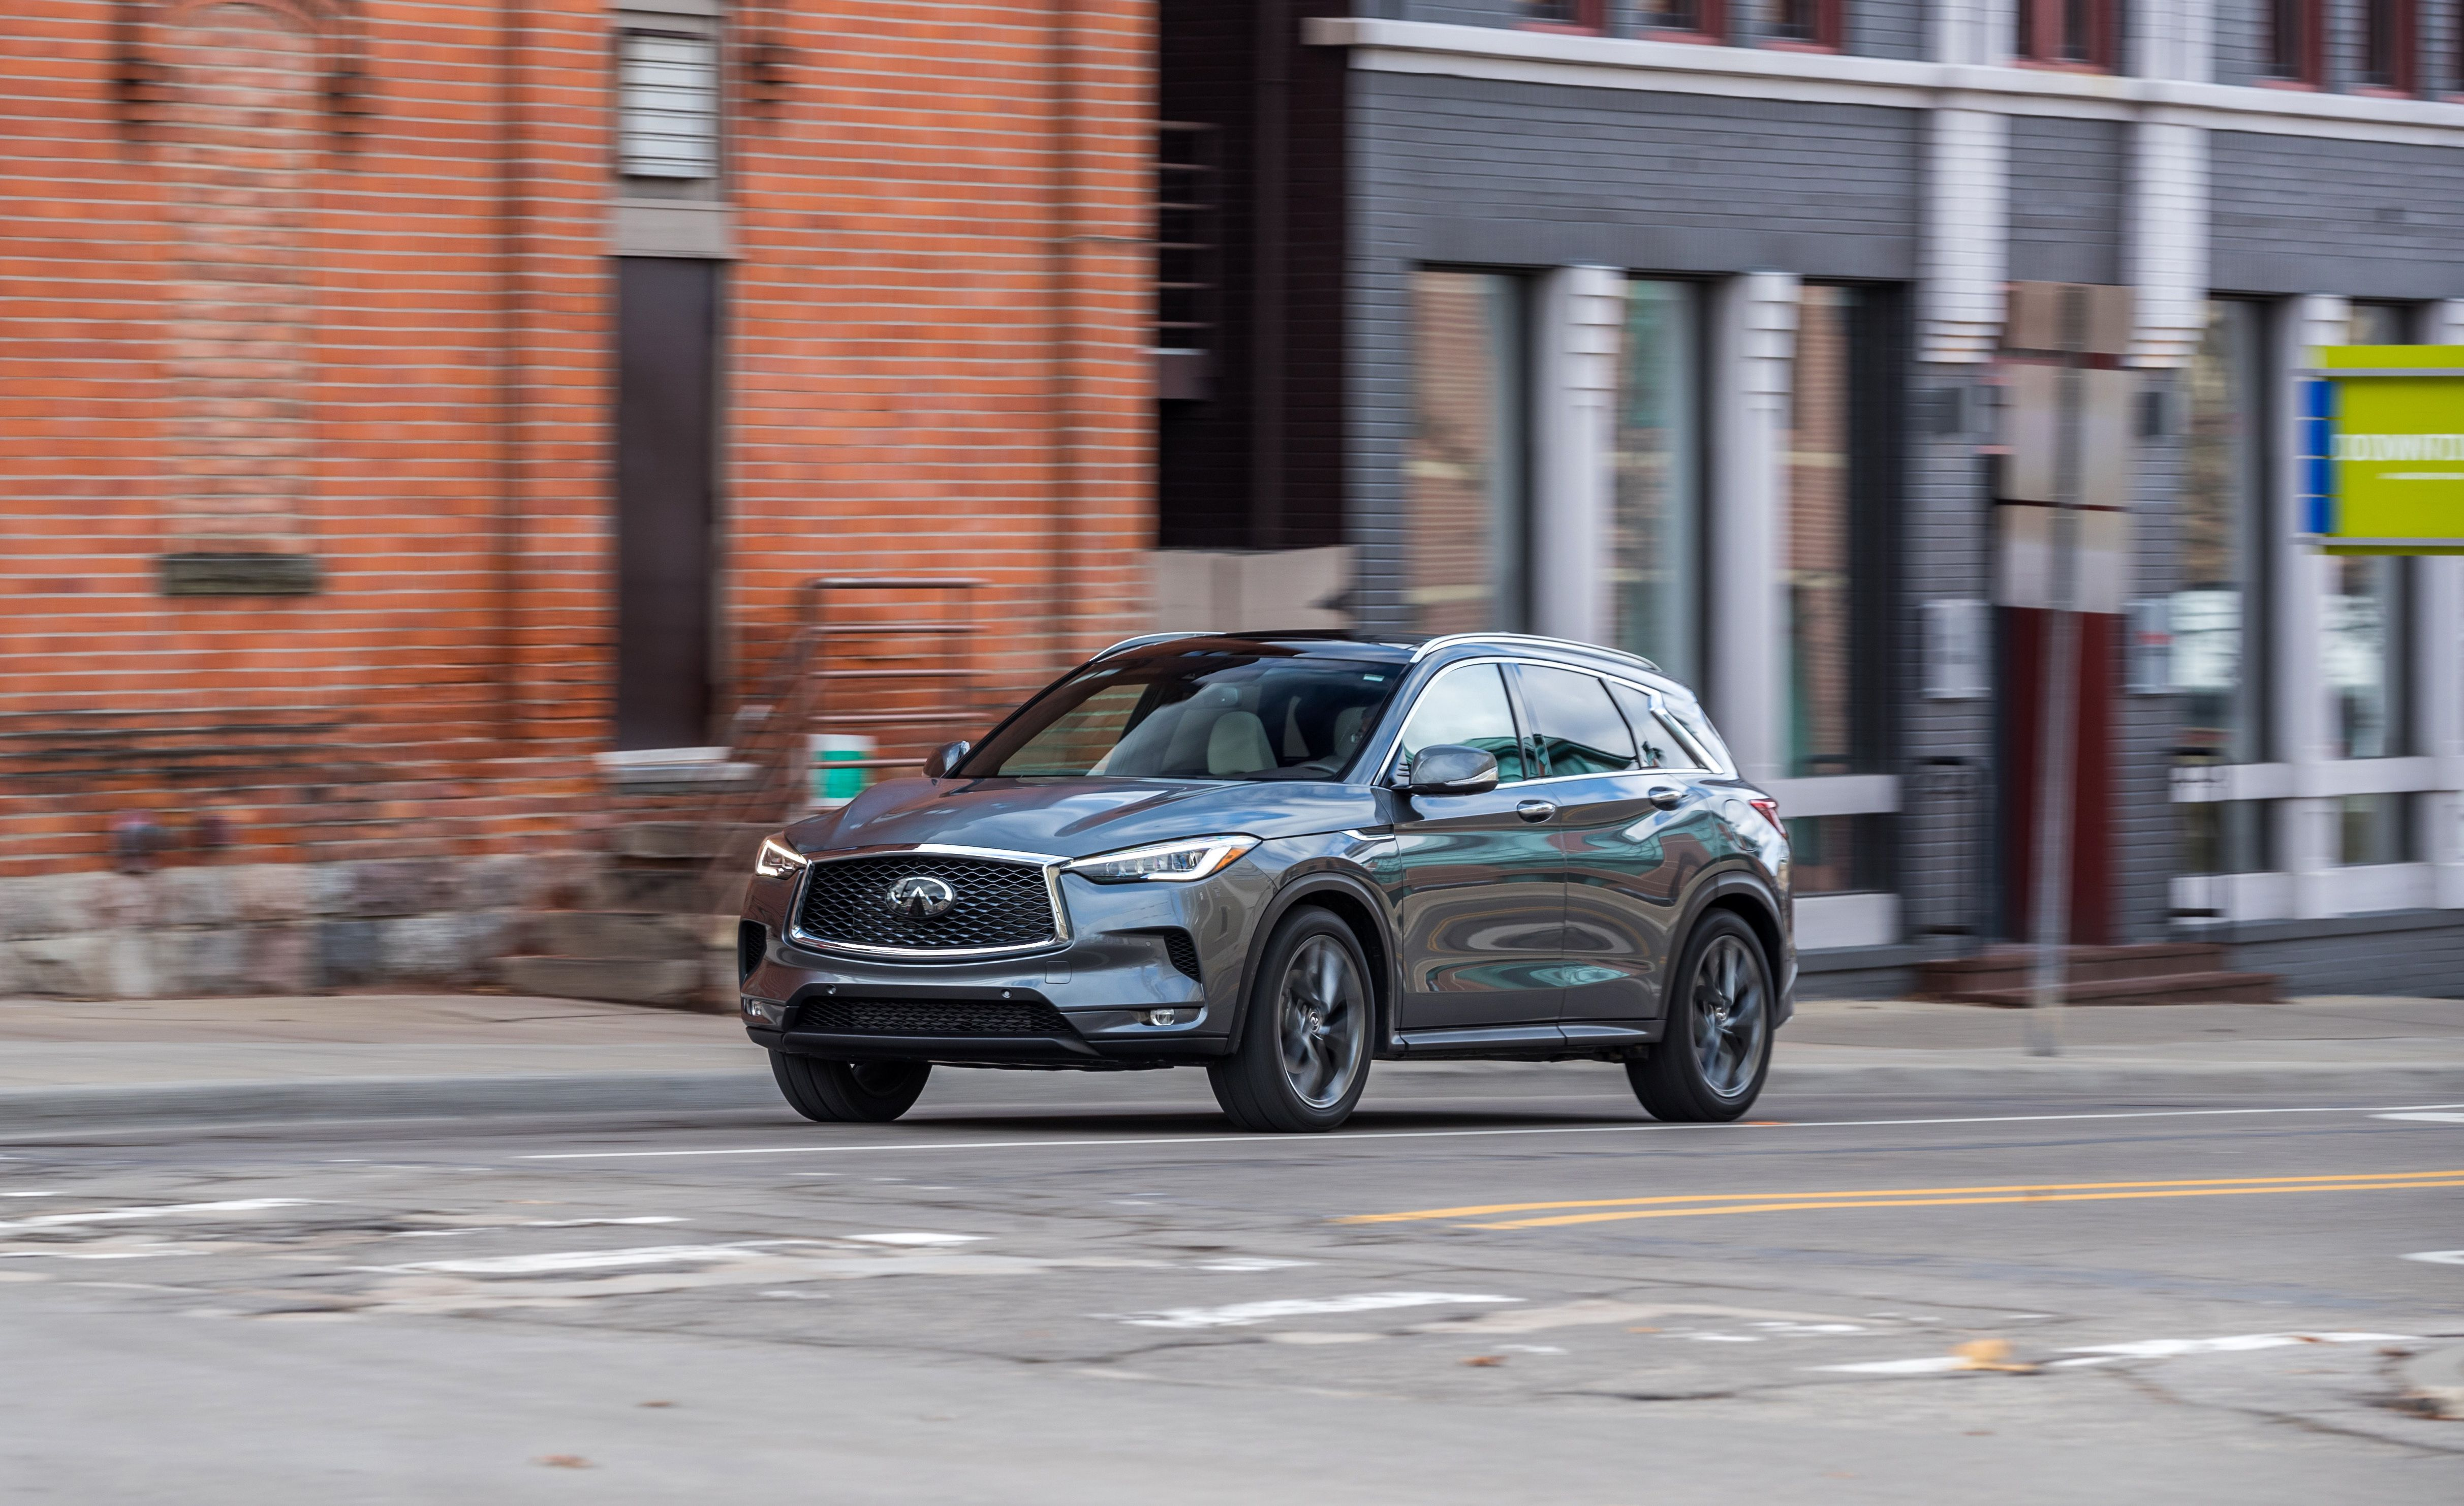 2019 Infiniti QX50 Review, Pricing, and Specs